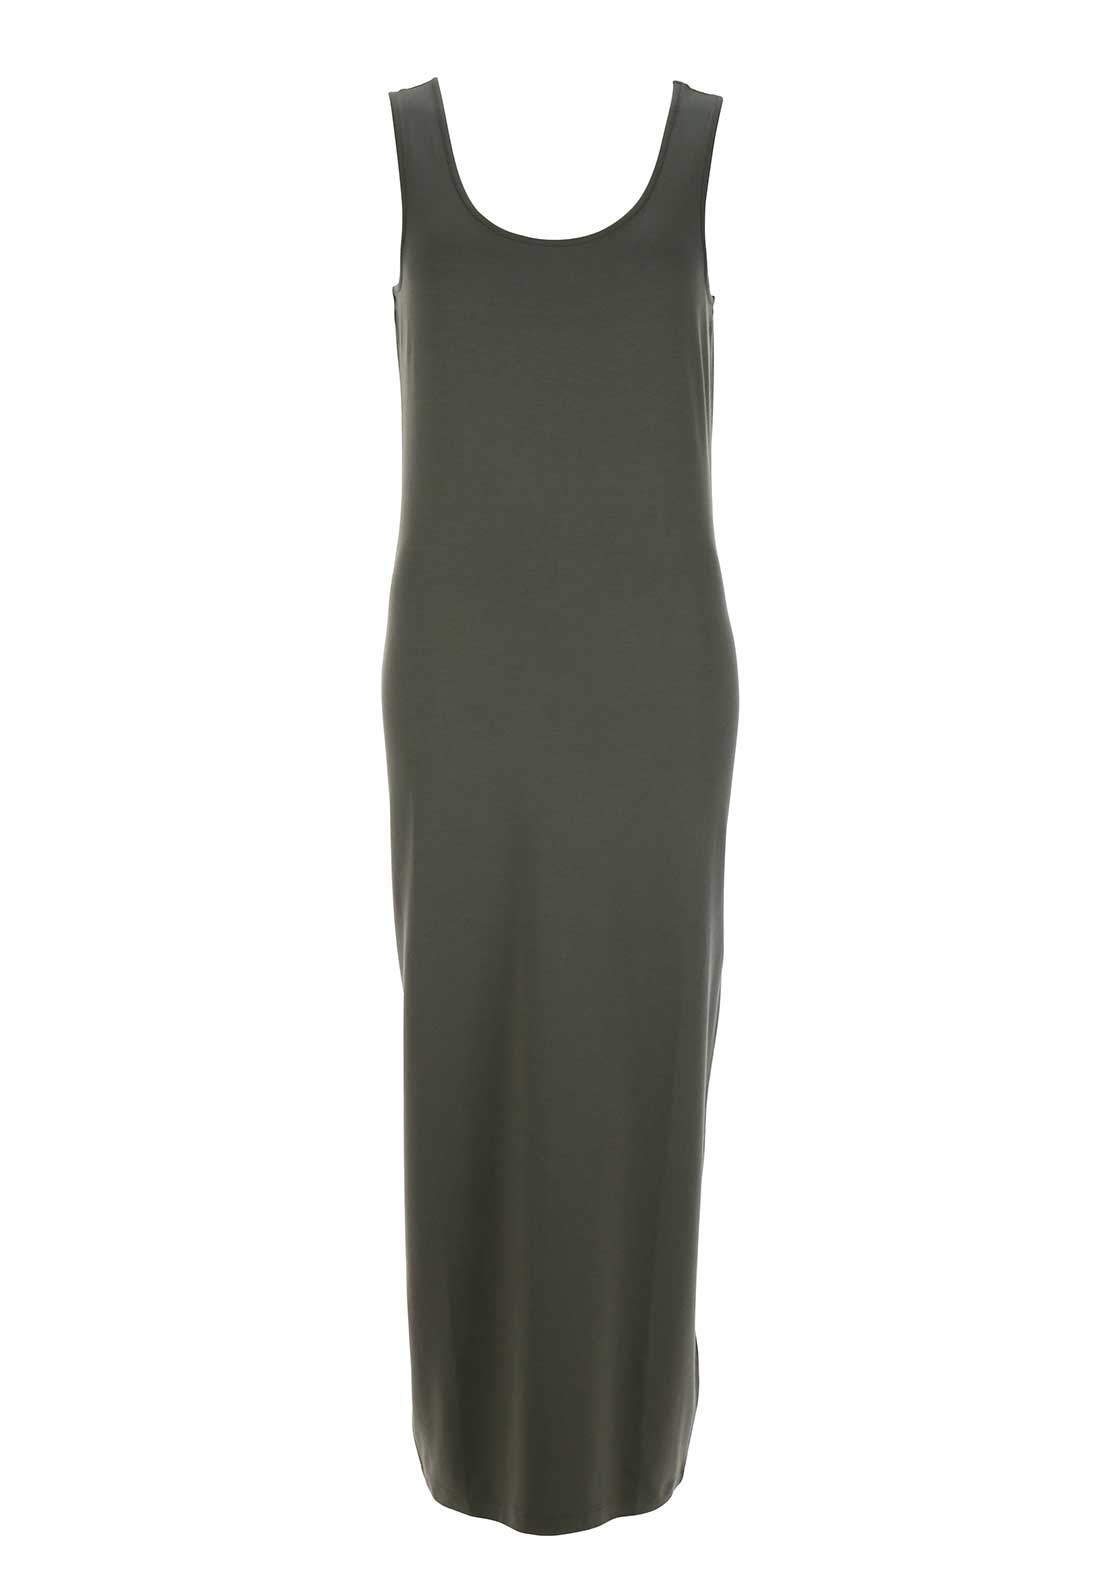 Naya Sleeveless Jersey Maxi Dress, Khaki Green